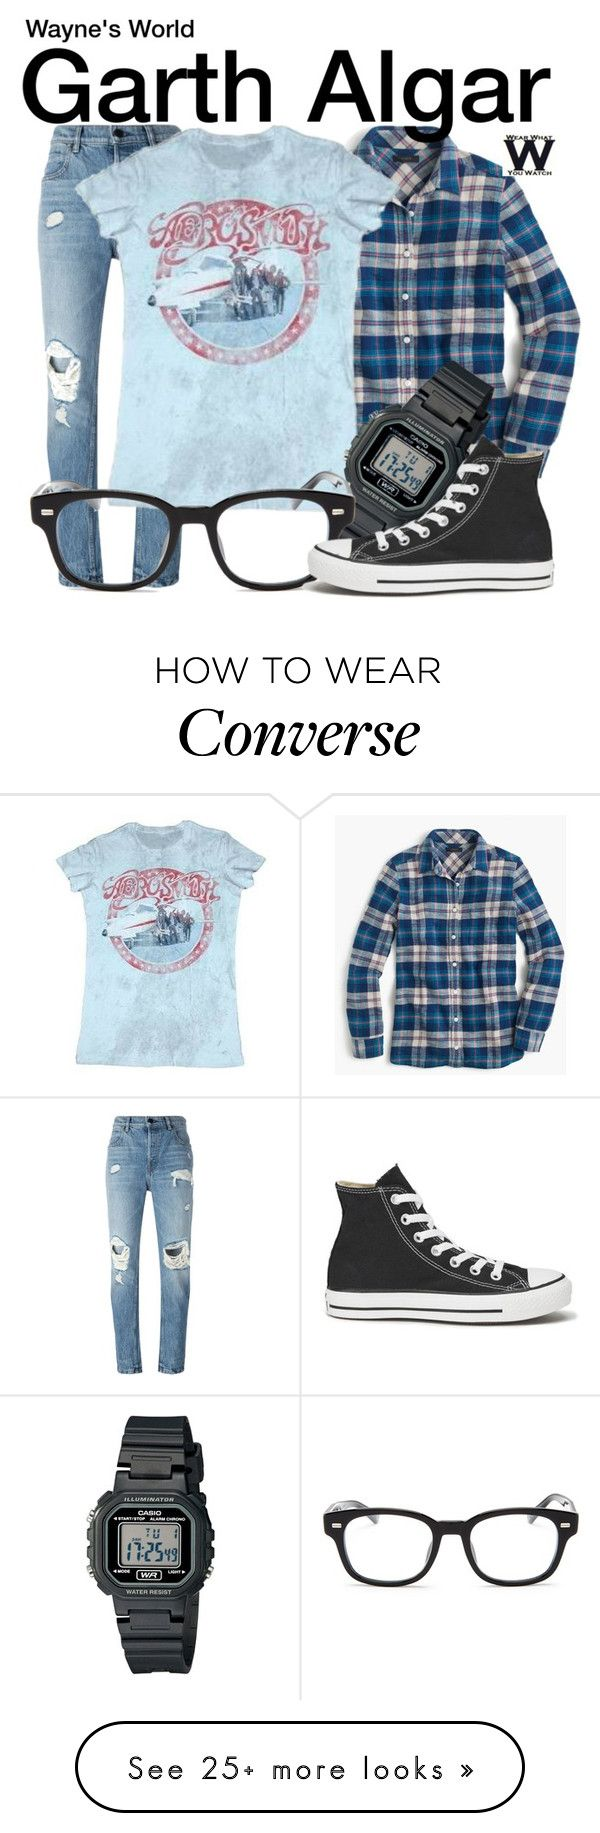 """Wayne's World"" by wearwhatyouwatch on Polyvore featuring Alexander Wang, J.Crew, Casio, Gucci, Converse, wearwhatyouwatch and film"